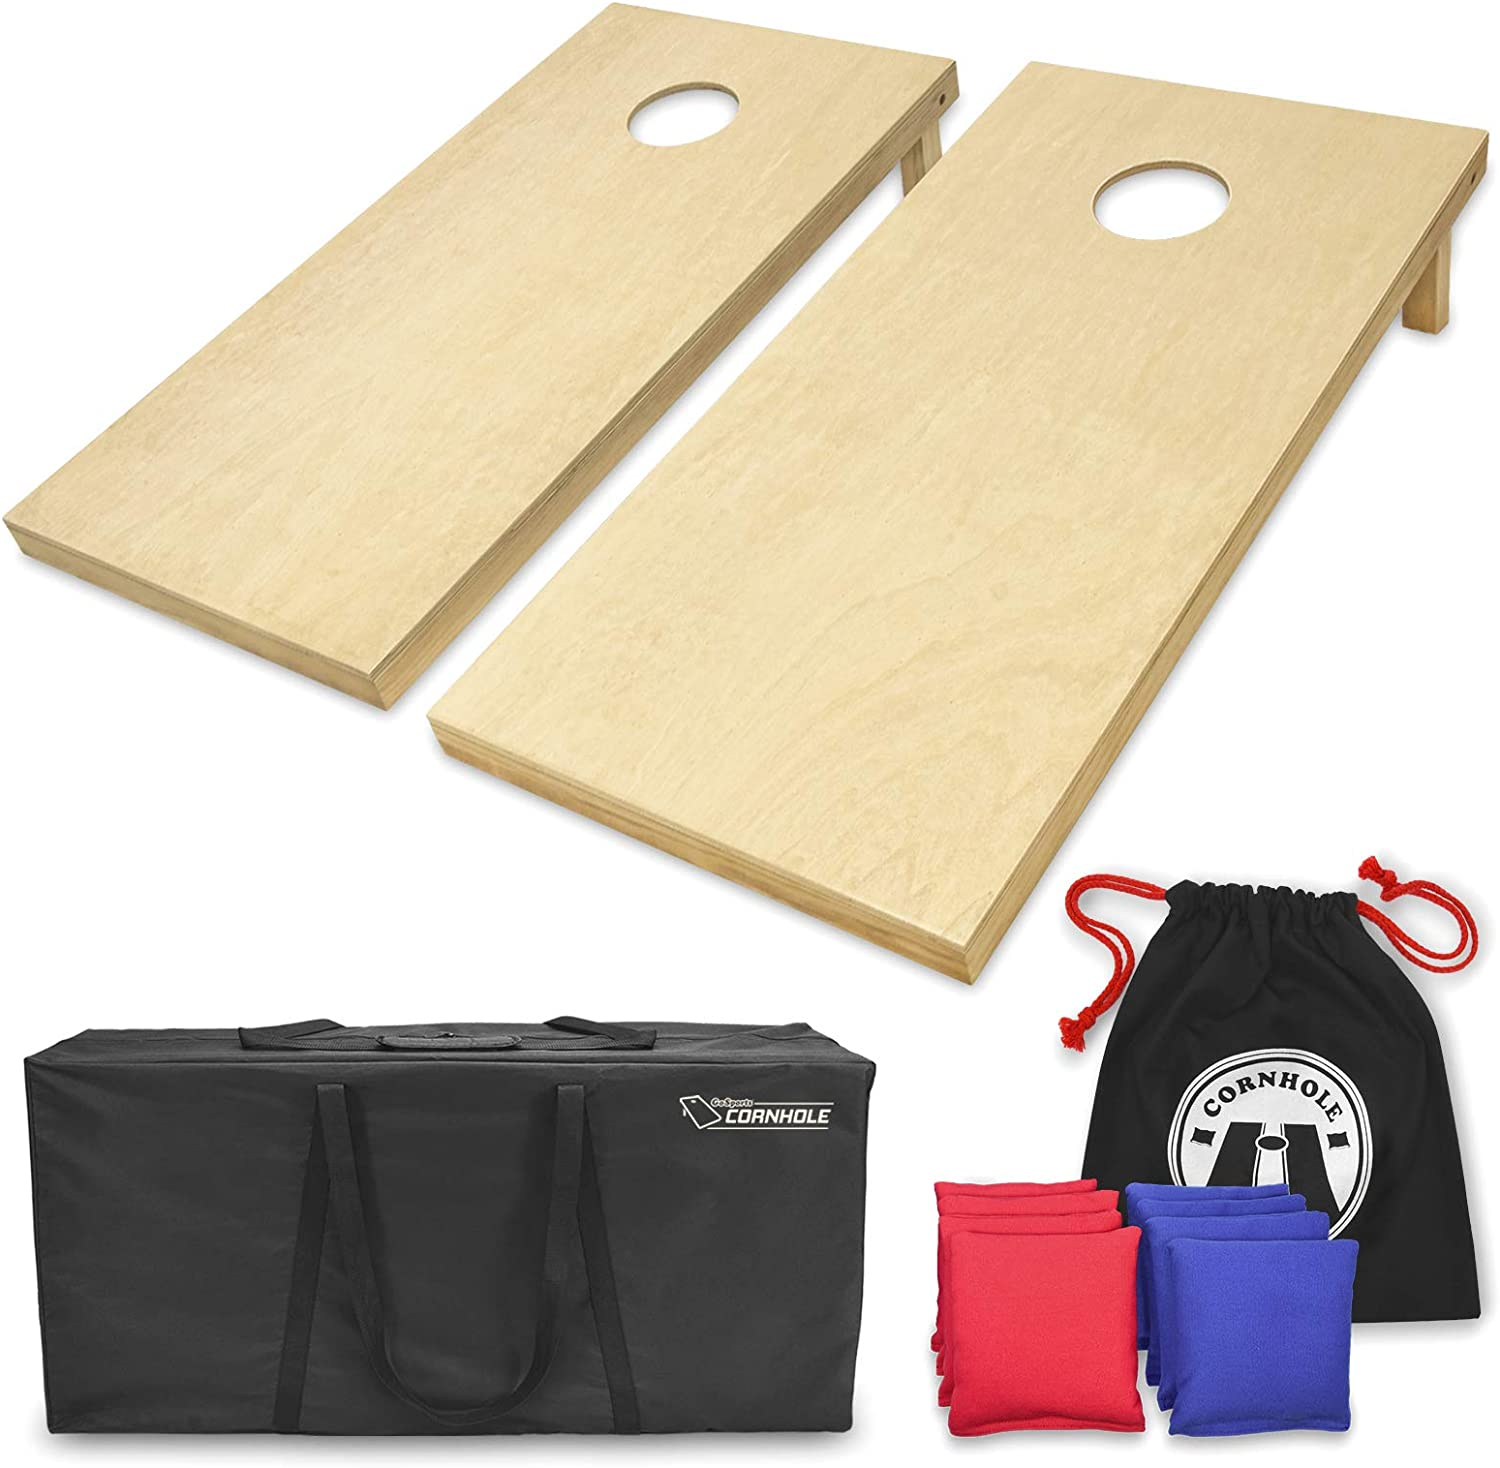 Amazon.com : GoSports Solid Wood Premium Cornhole Set - Choose ...